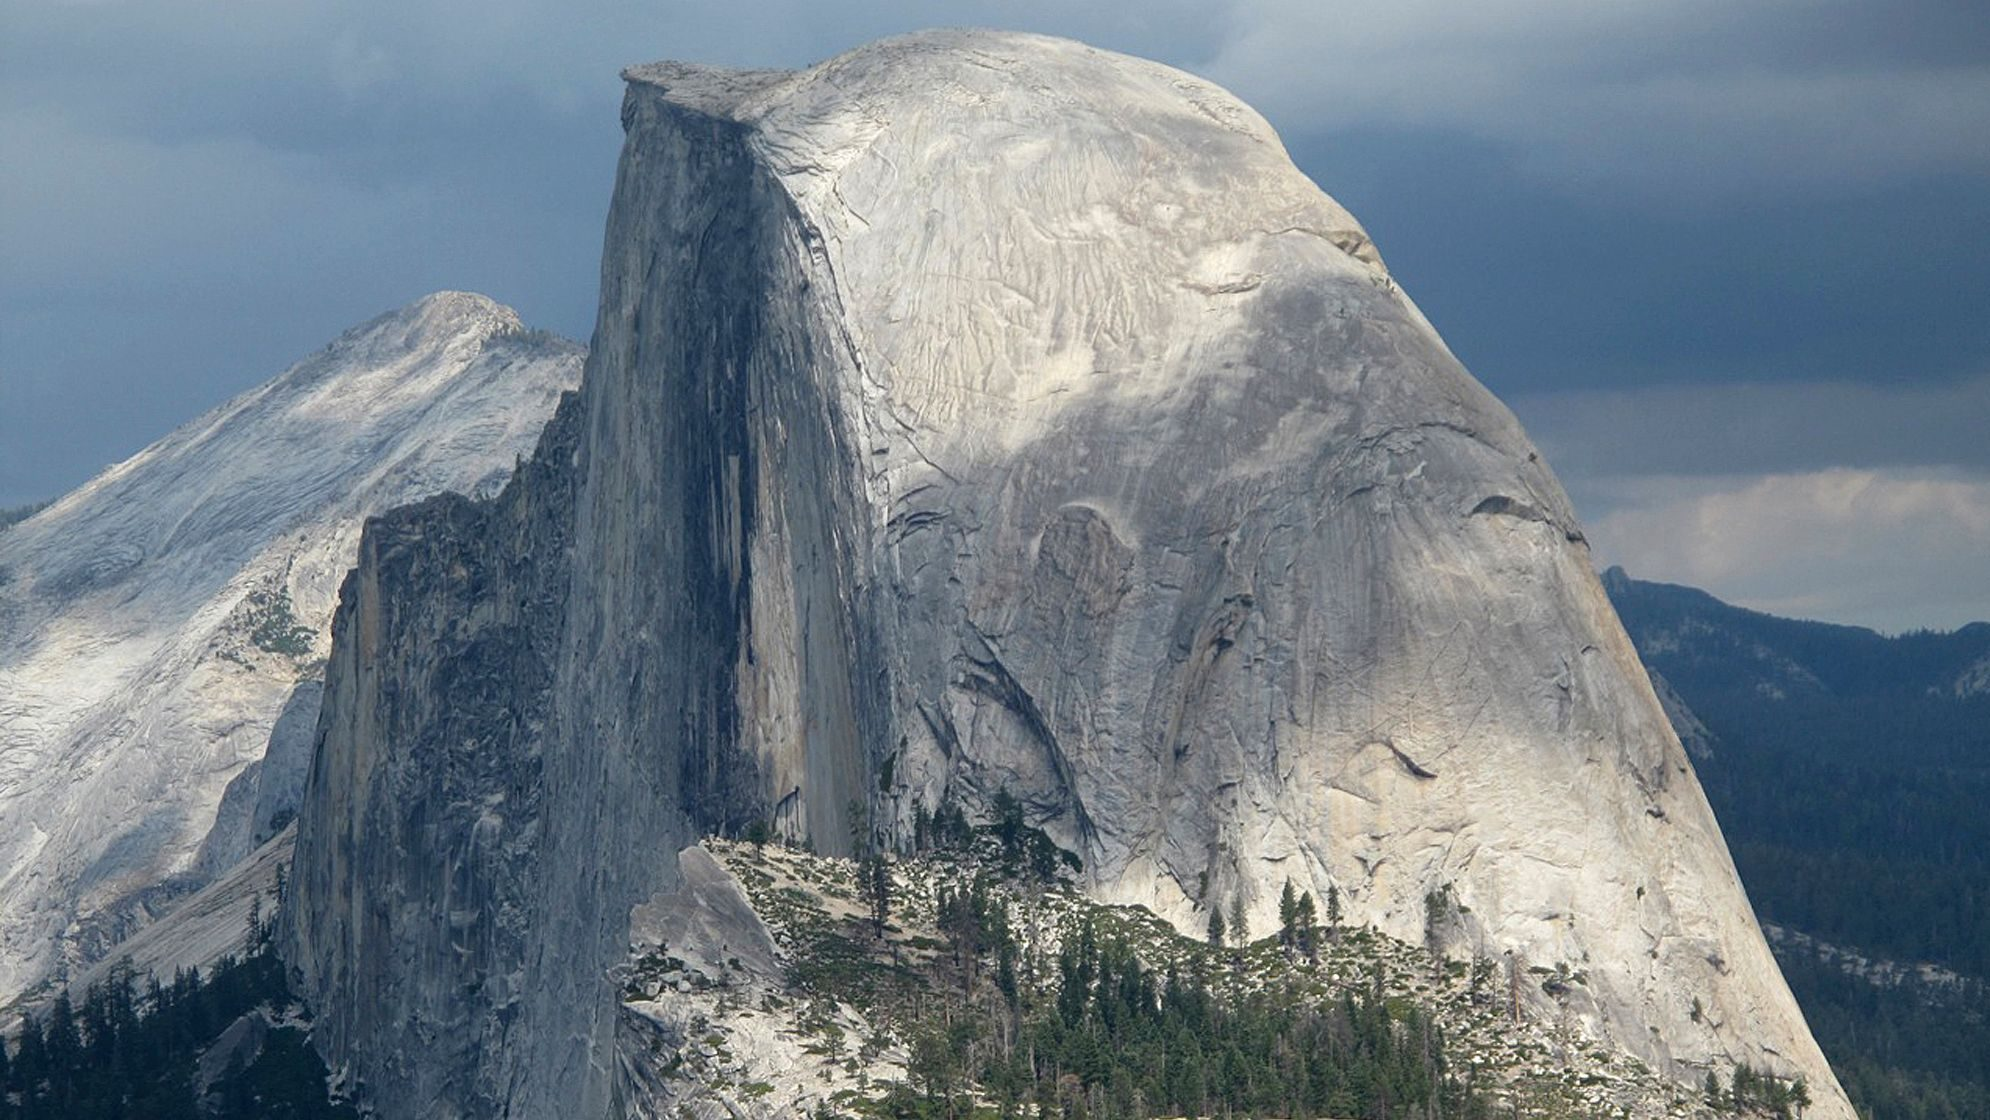 An image of the Half Dome at Yosemite.